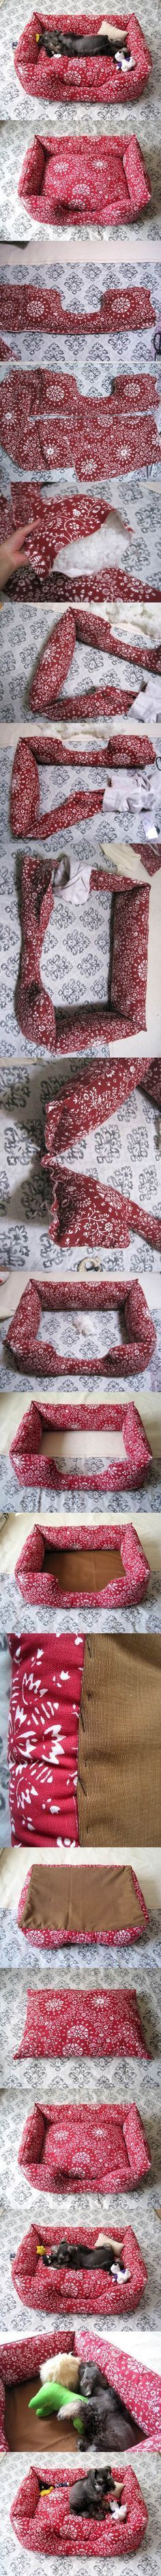 DIY Sew Couch for Pets | LovePetsDIY.com